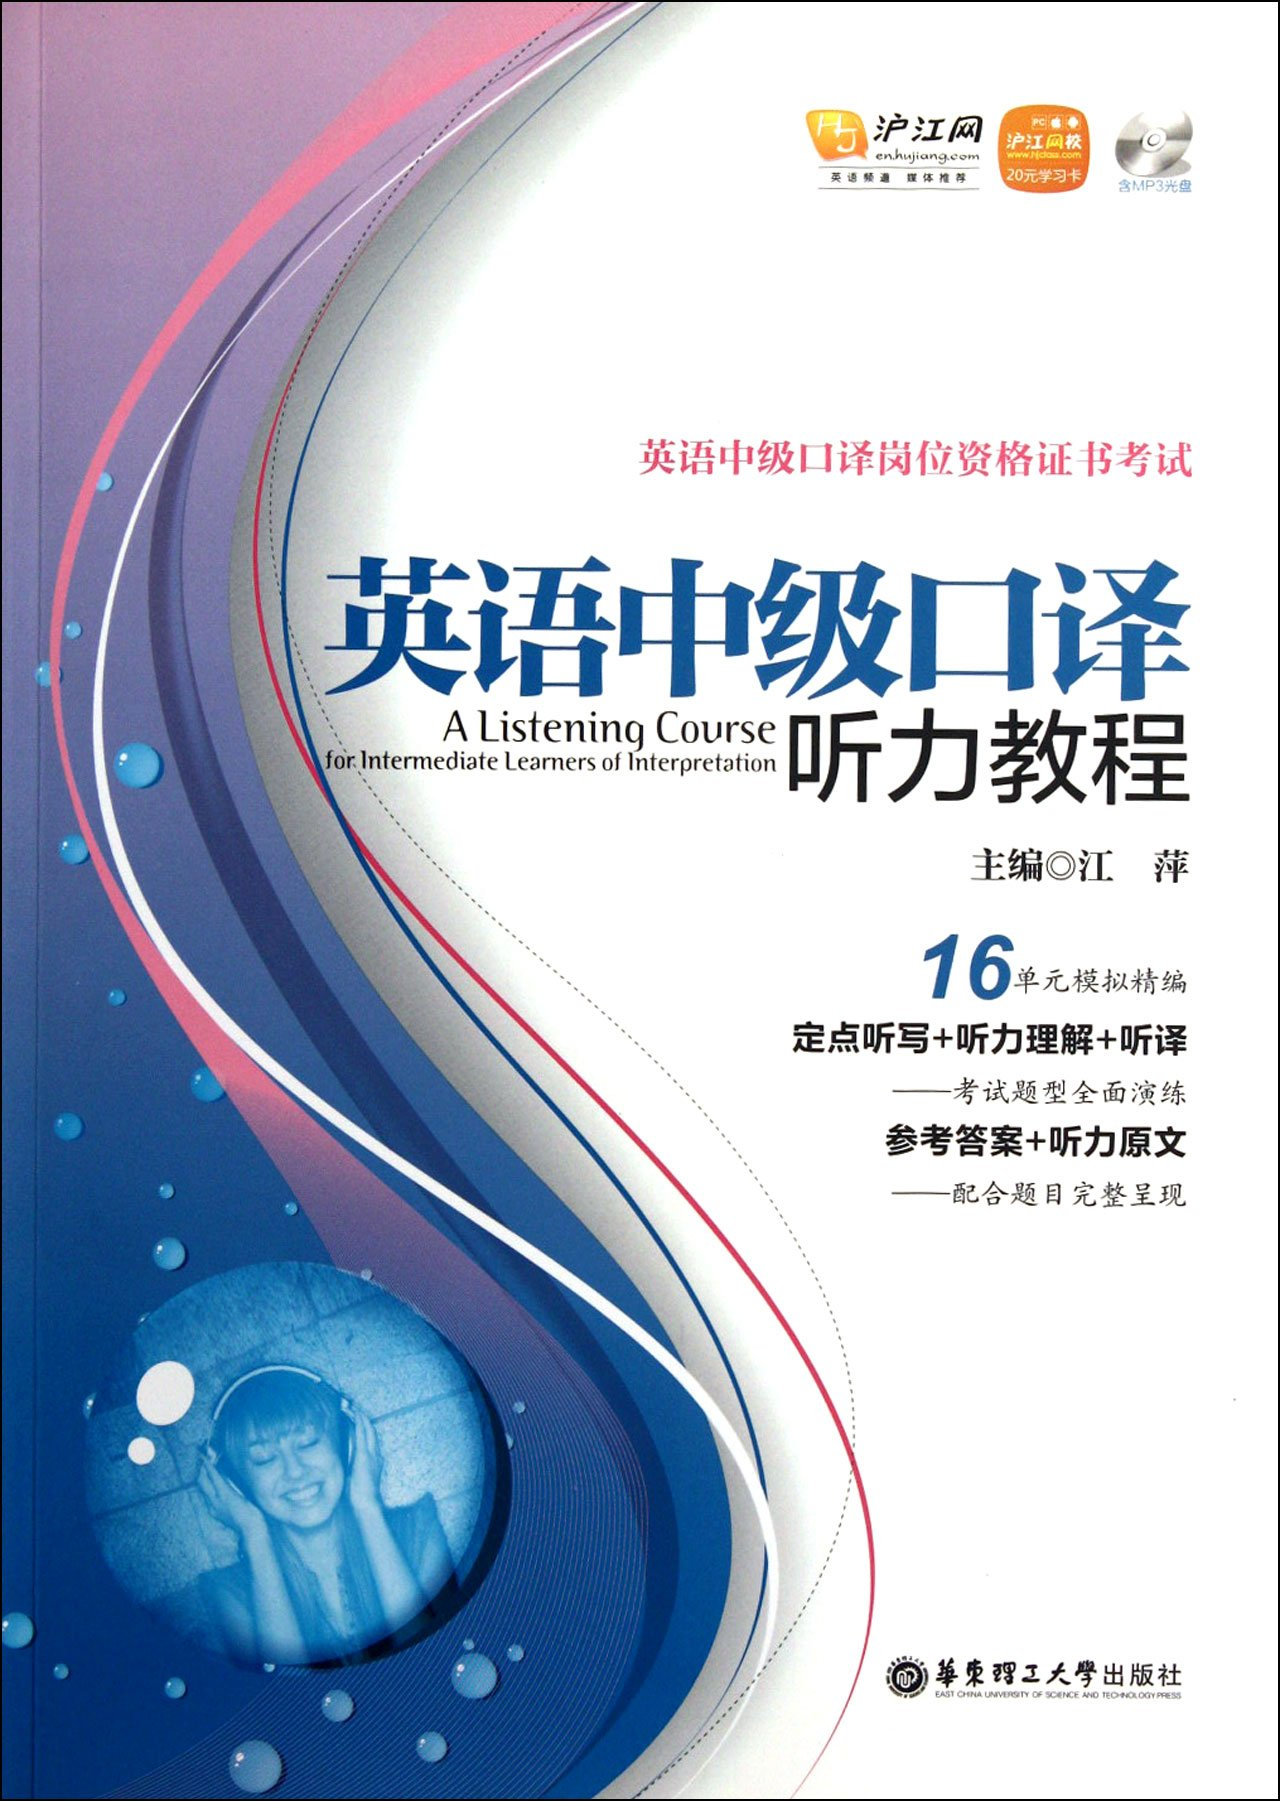 Download An Intermediate Course of English Interpretation - (With MP3 CD) (Chinese Edition) PDF